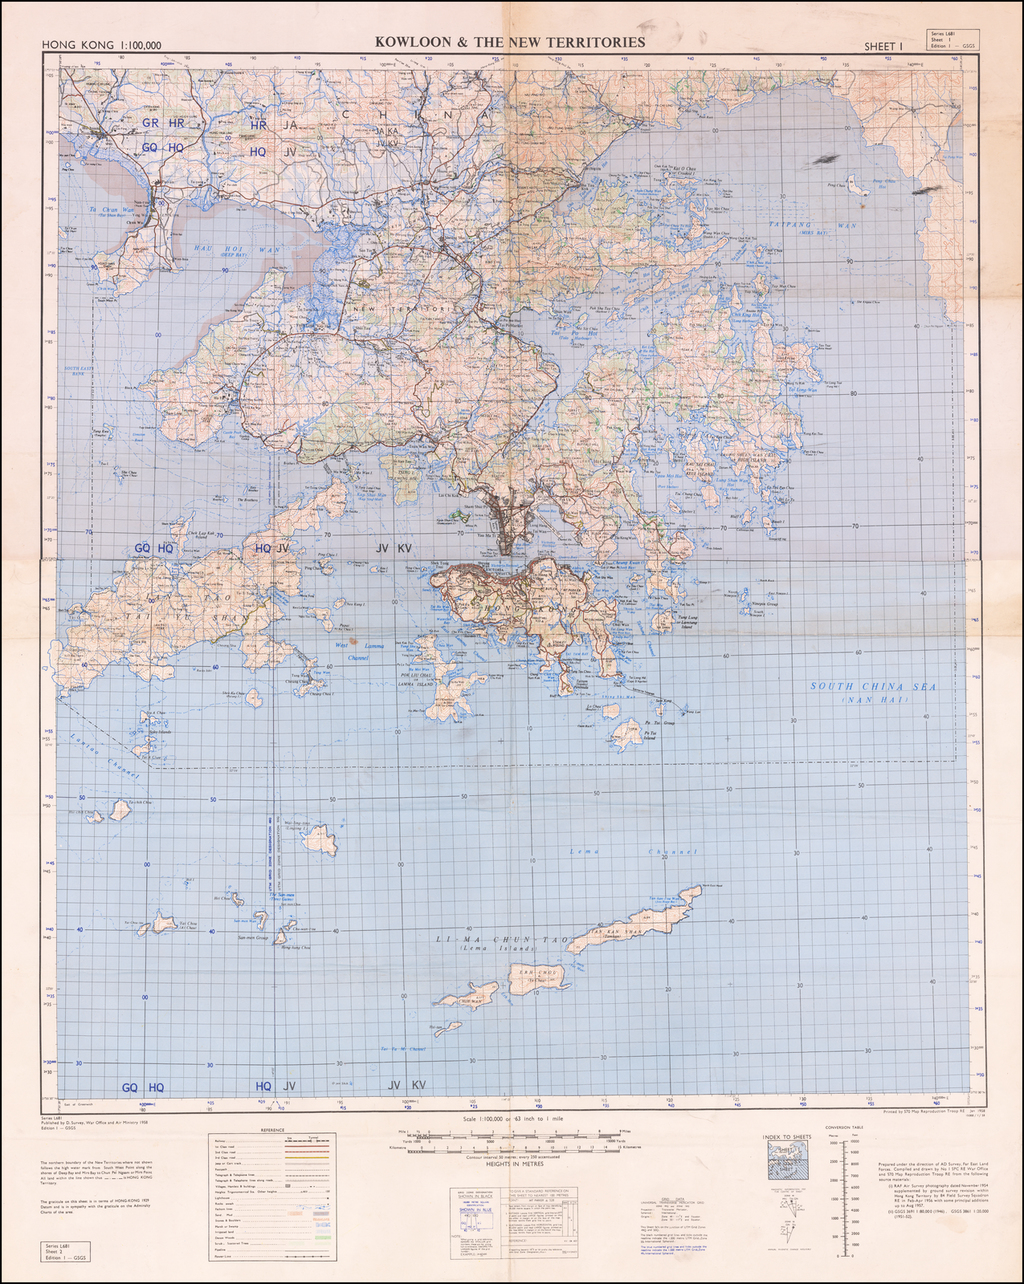 Hong Kong 1:100,000 Kowloon & The New Territories By War Office